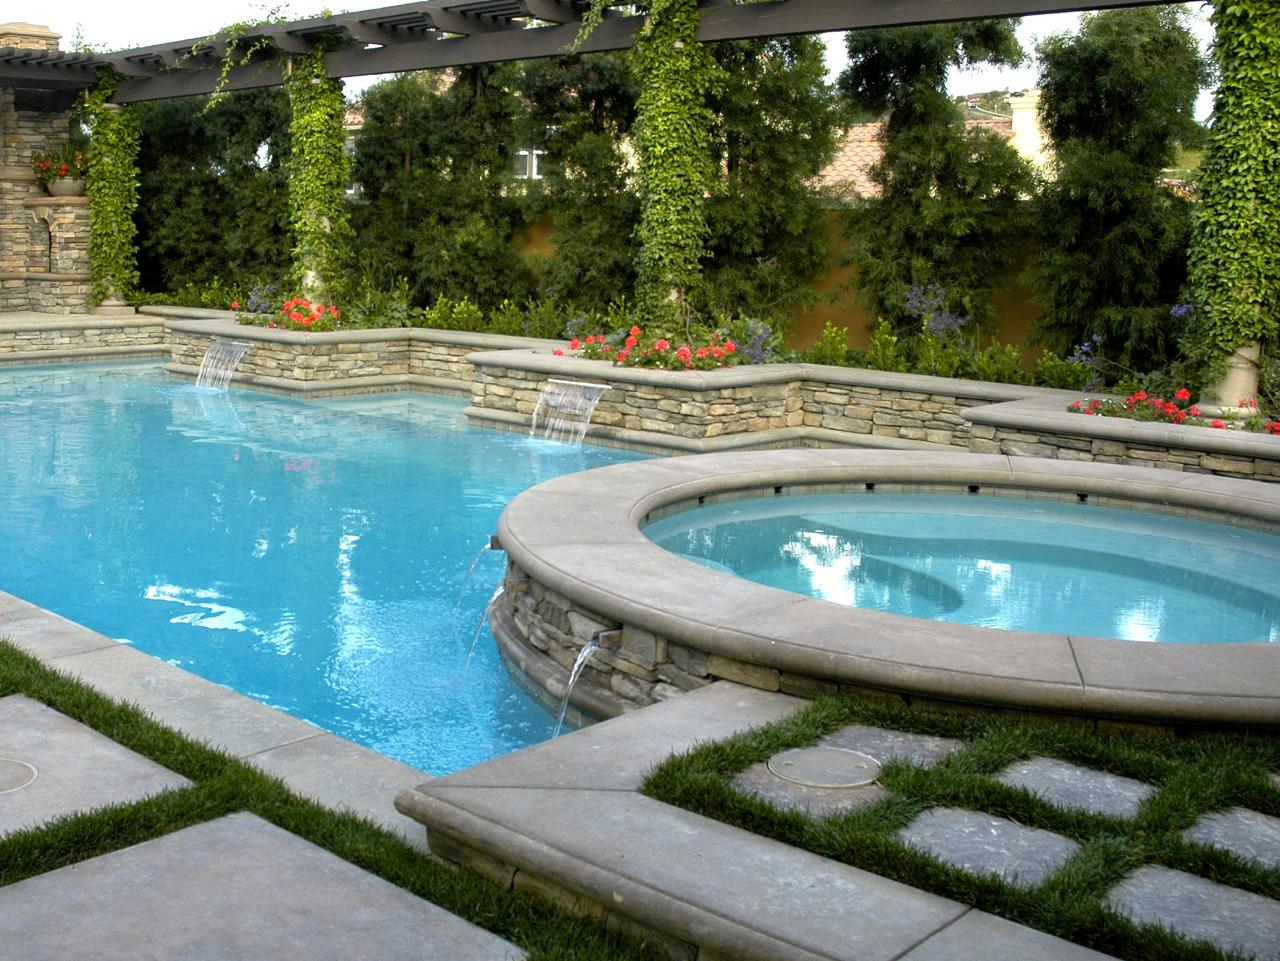 Planning a poolside retreat hgtv for Poolside ideas